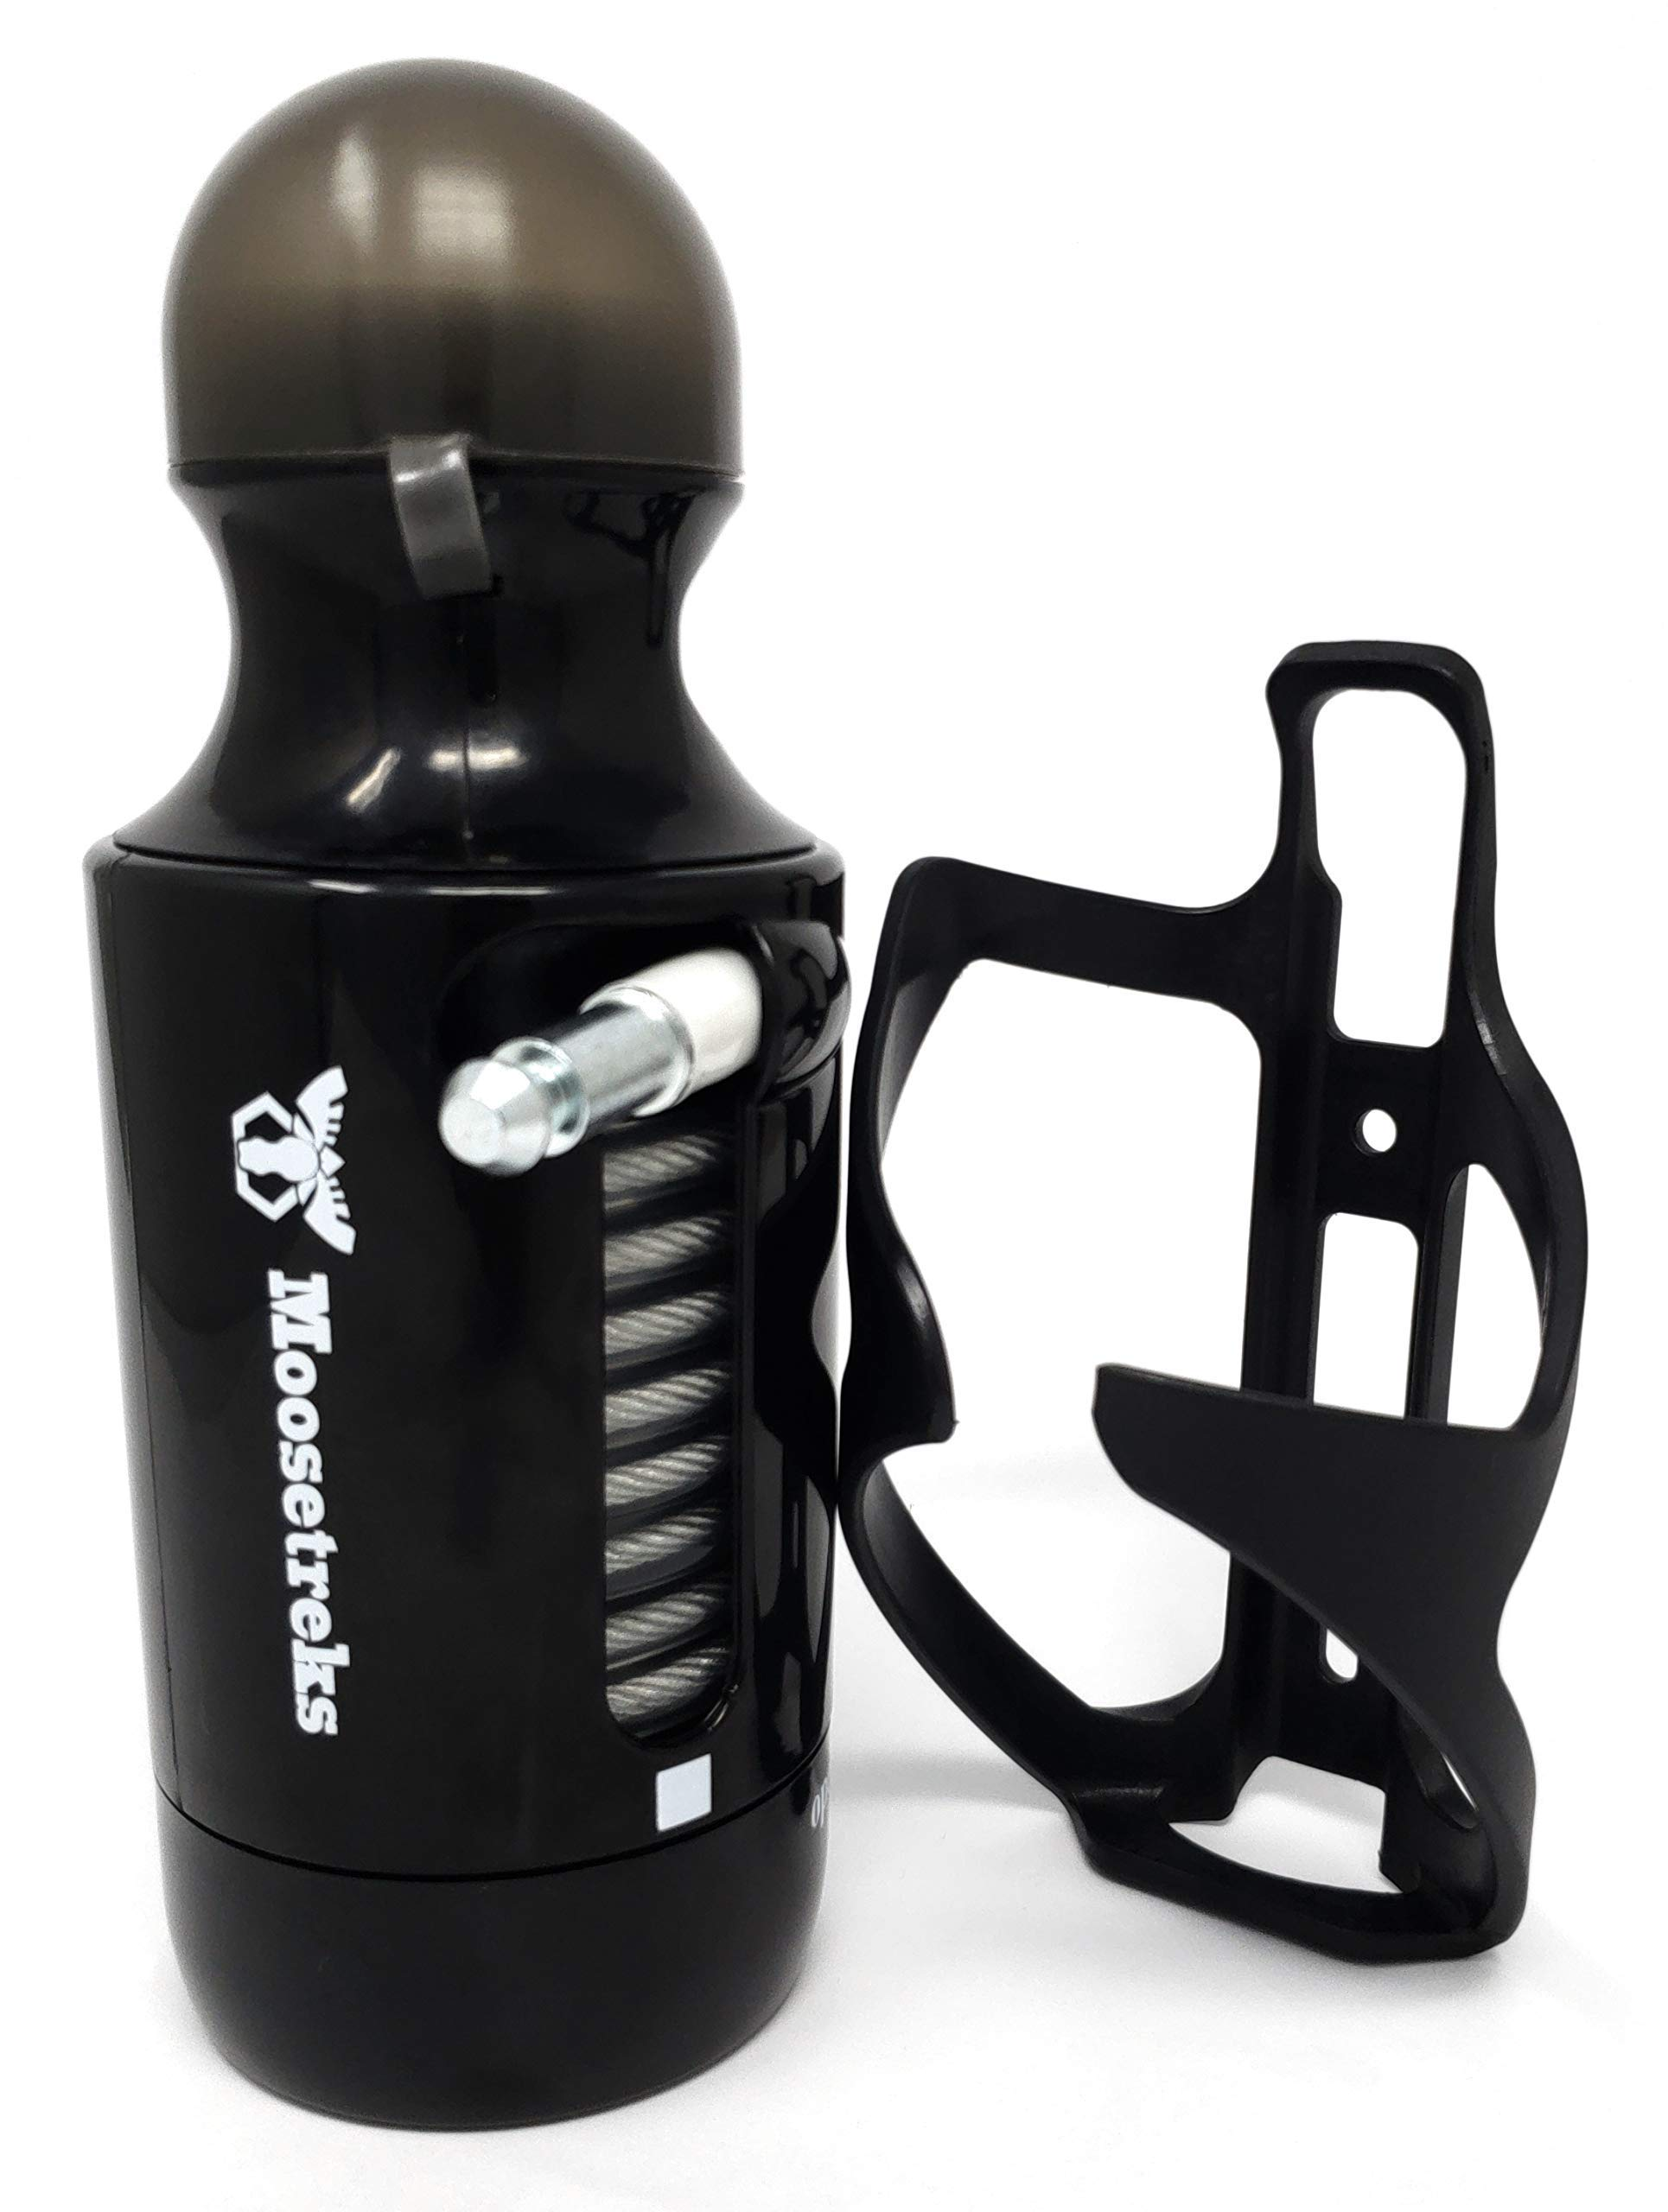 Moosetreks Bike Bottle Lock with Cage | Bottle-Shaped Bike Cable Lock with Free Bottle Cage